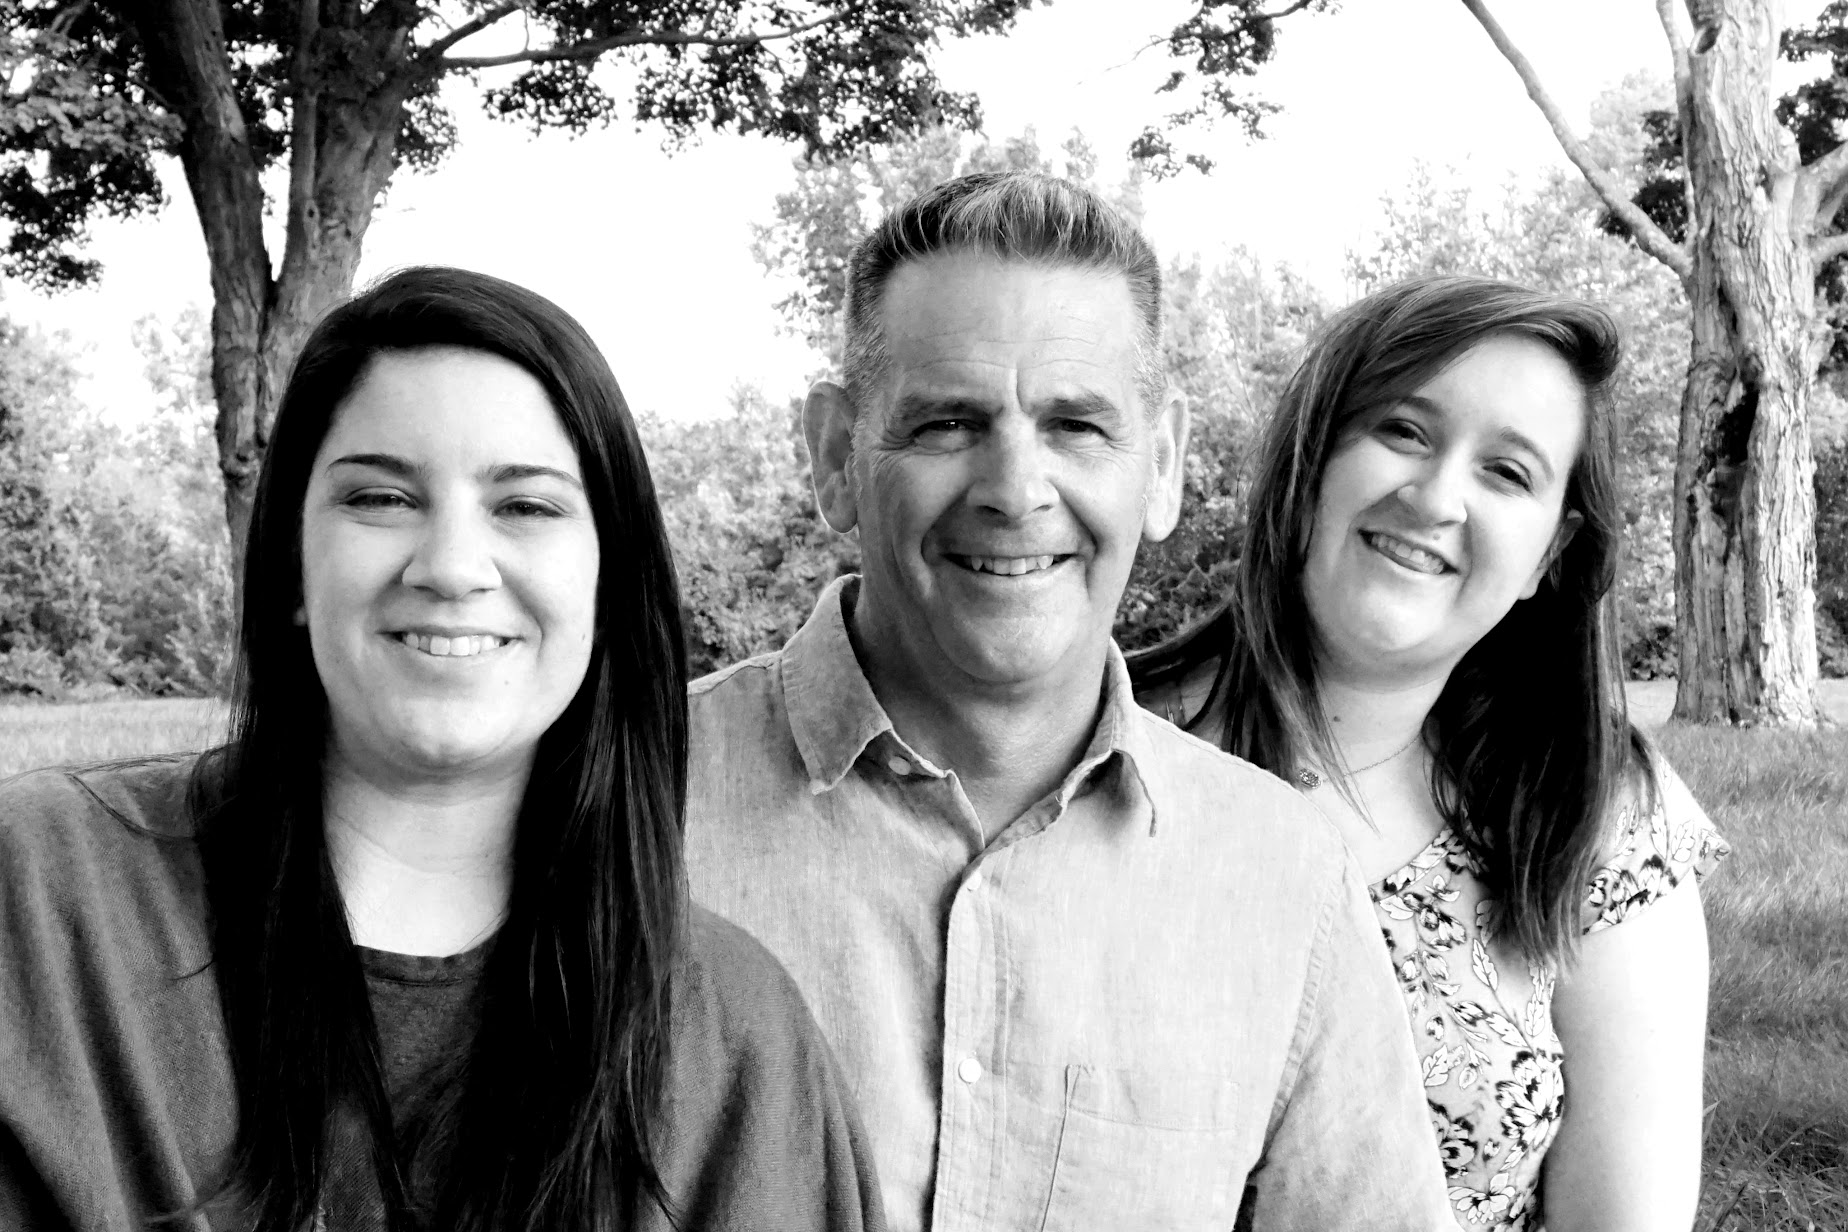 Black and white family photography session